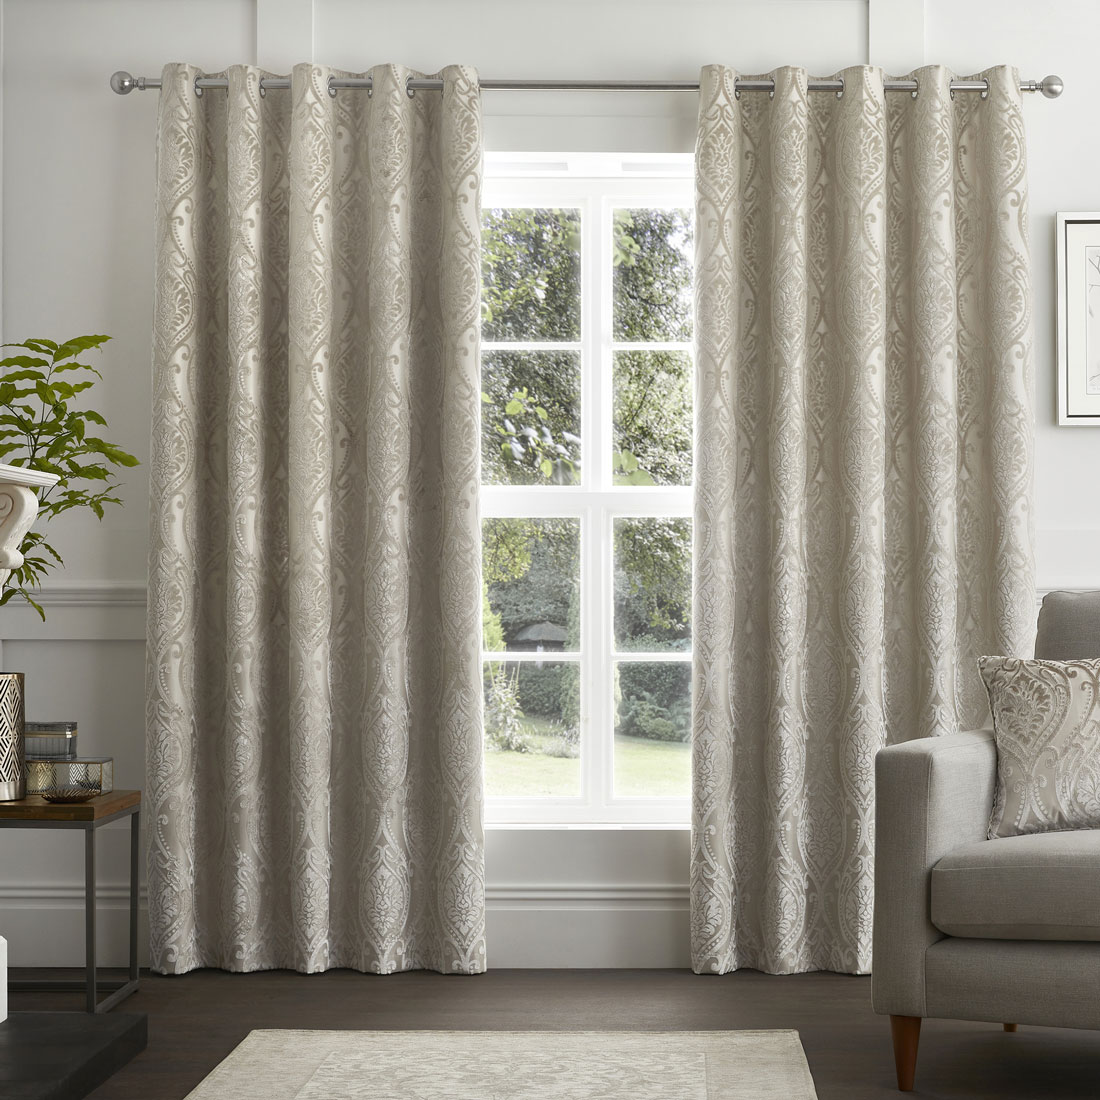 Chateau Devore Natural Eyelet Curtains